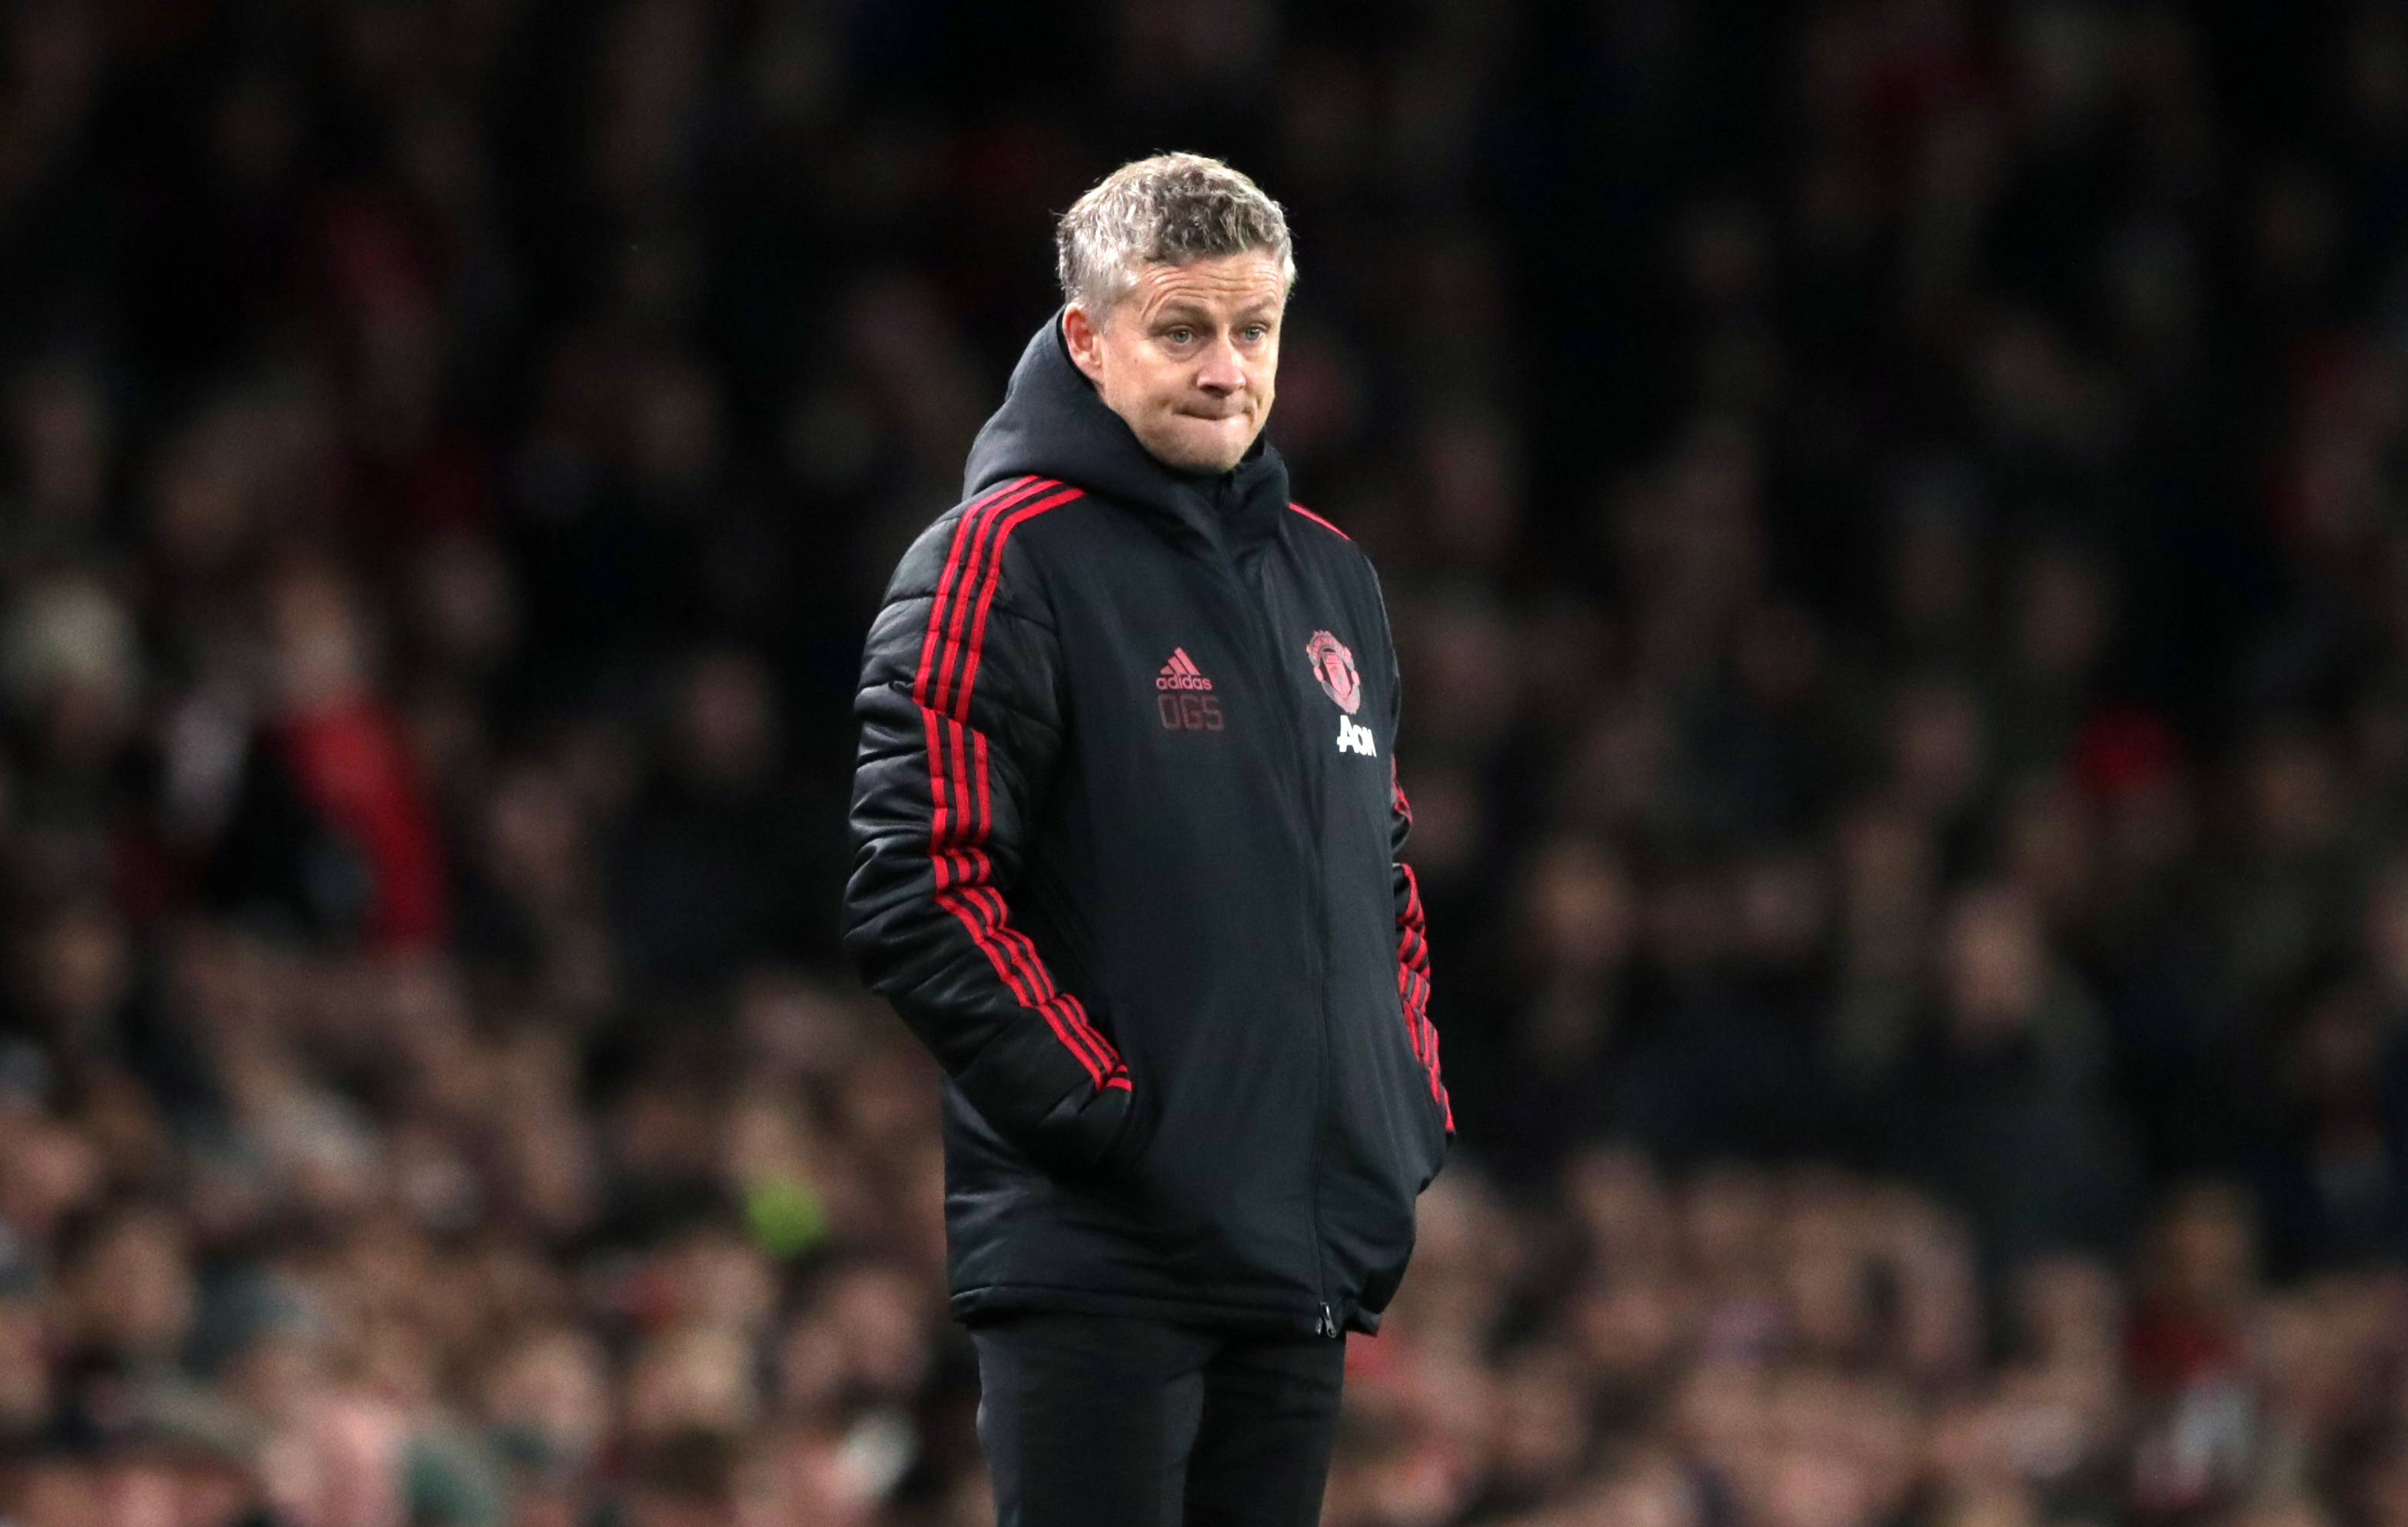 Ole Gunnar Solskjaer: In the footsteps of the United manager [Video]